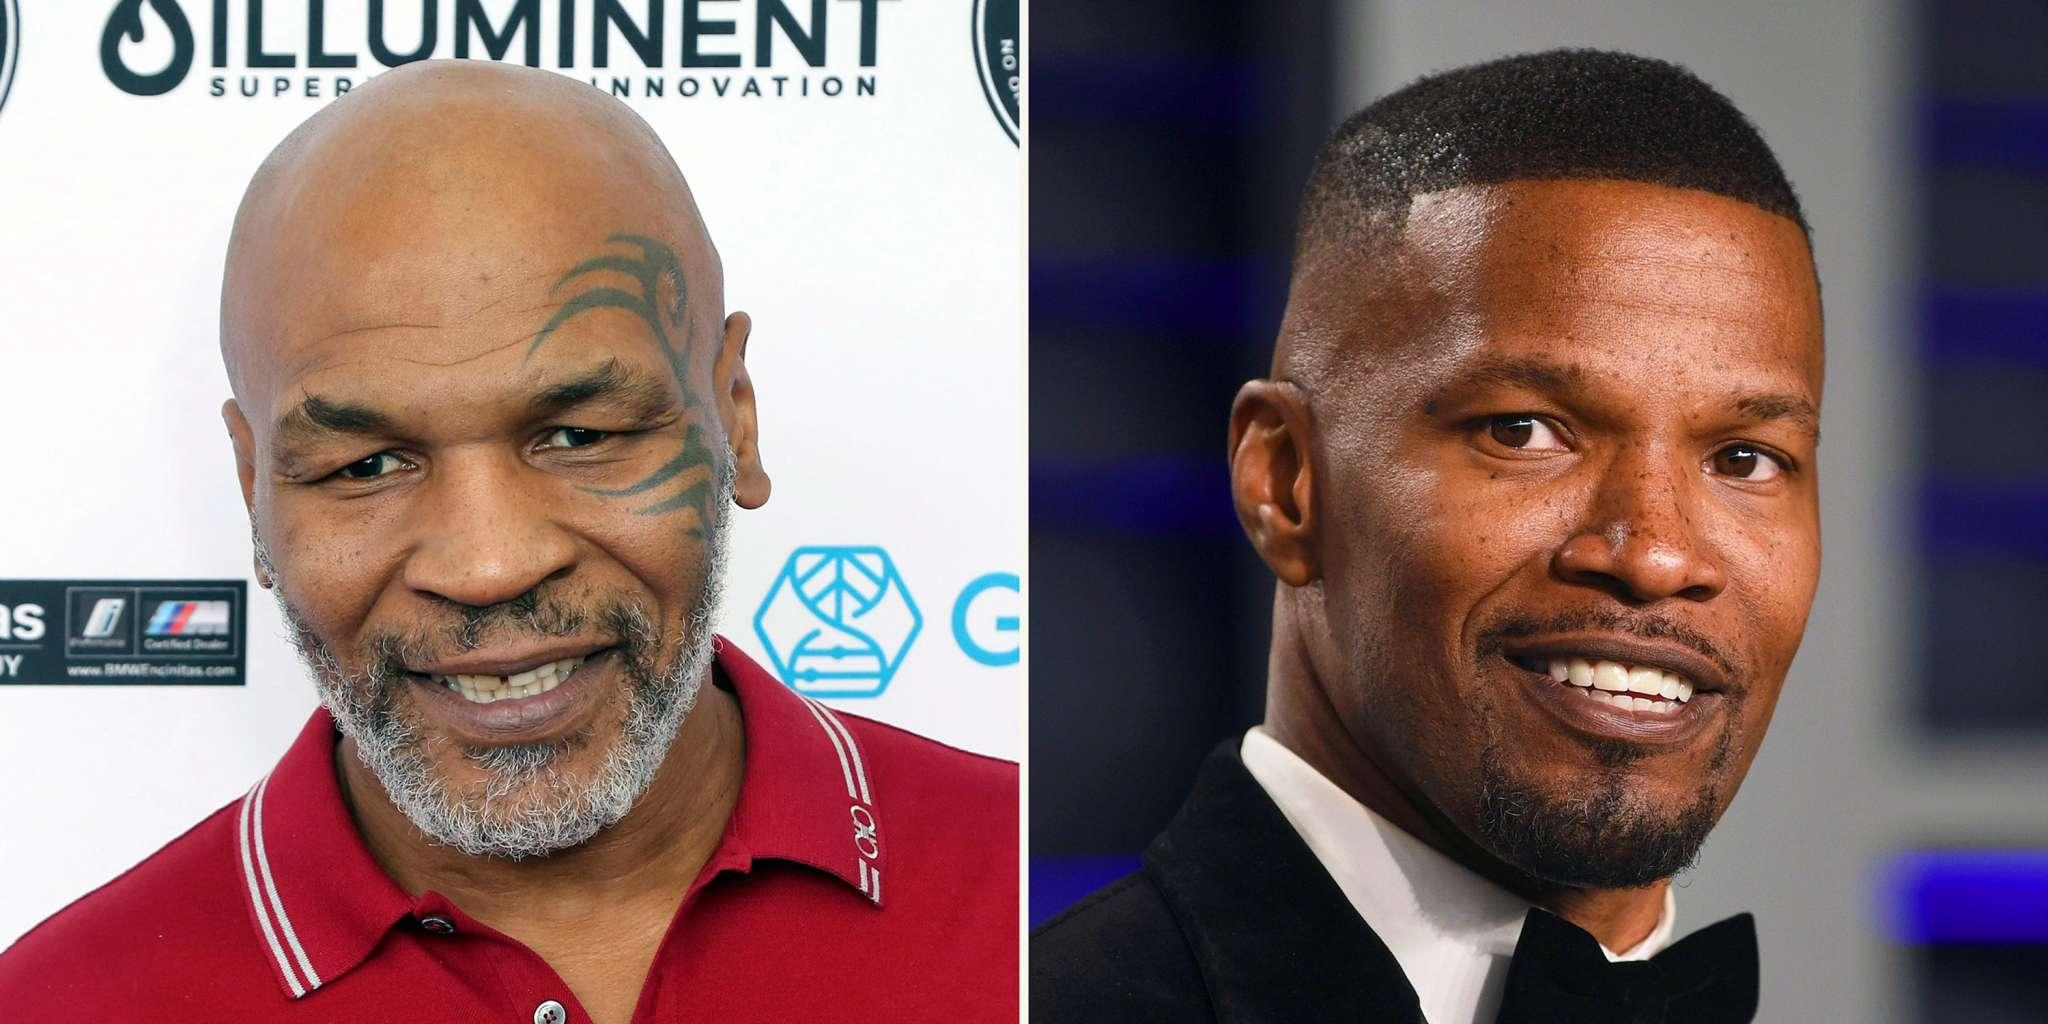 Jamie Foxx Will Play Mike Tyson In New Biopic Series Called 'Tyson'